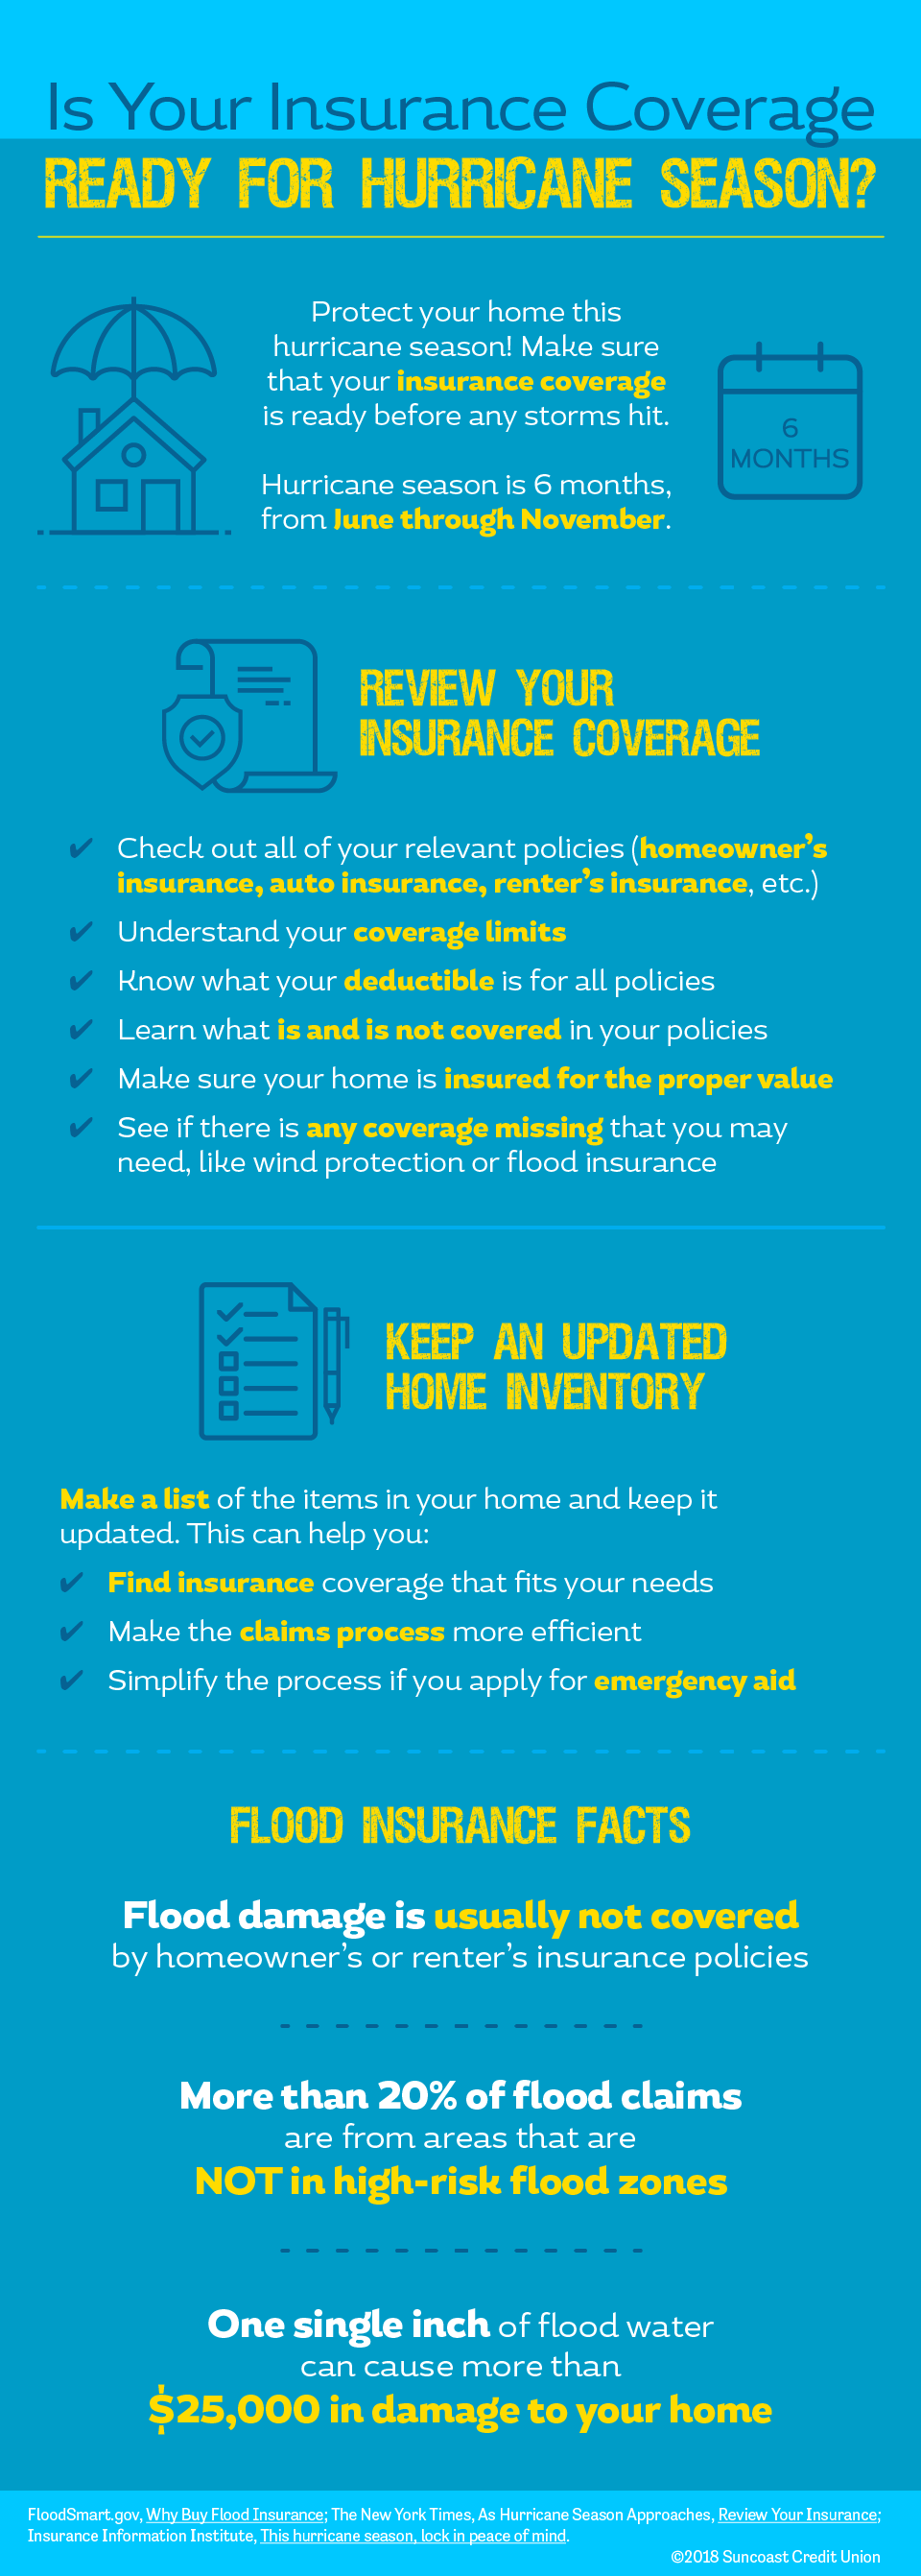 Is your home insurance ready for hurricane season – Infographic